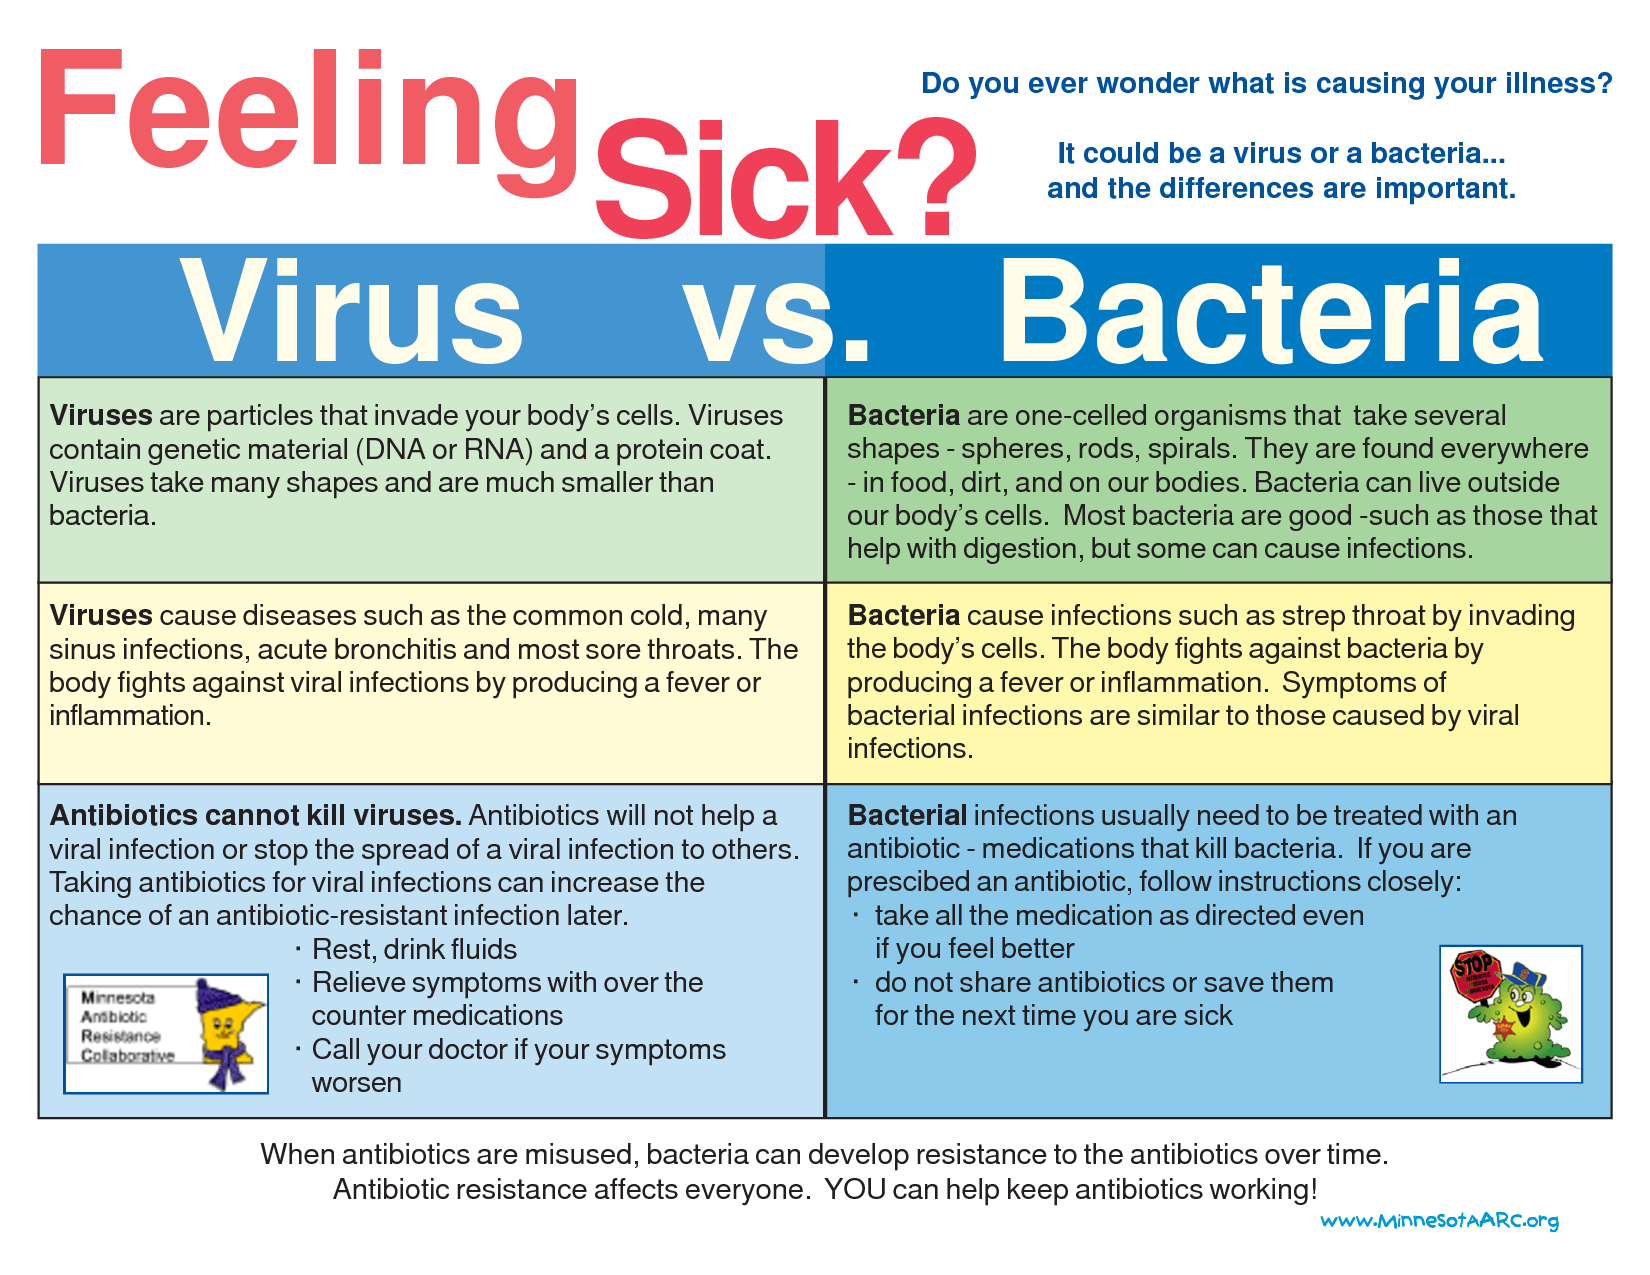 Bacteria Vs Viruses